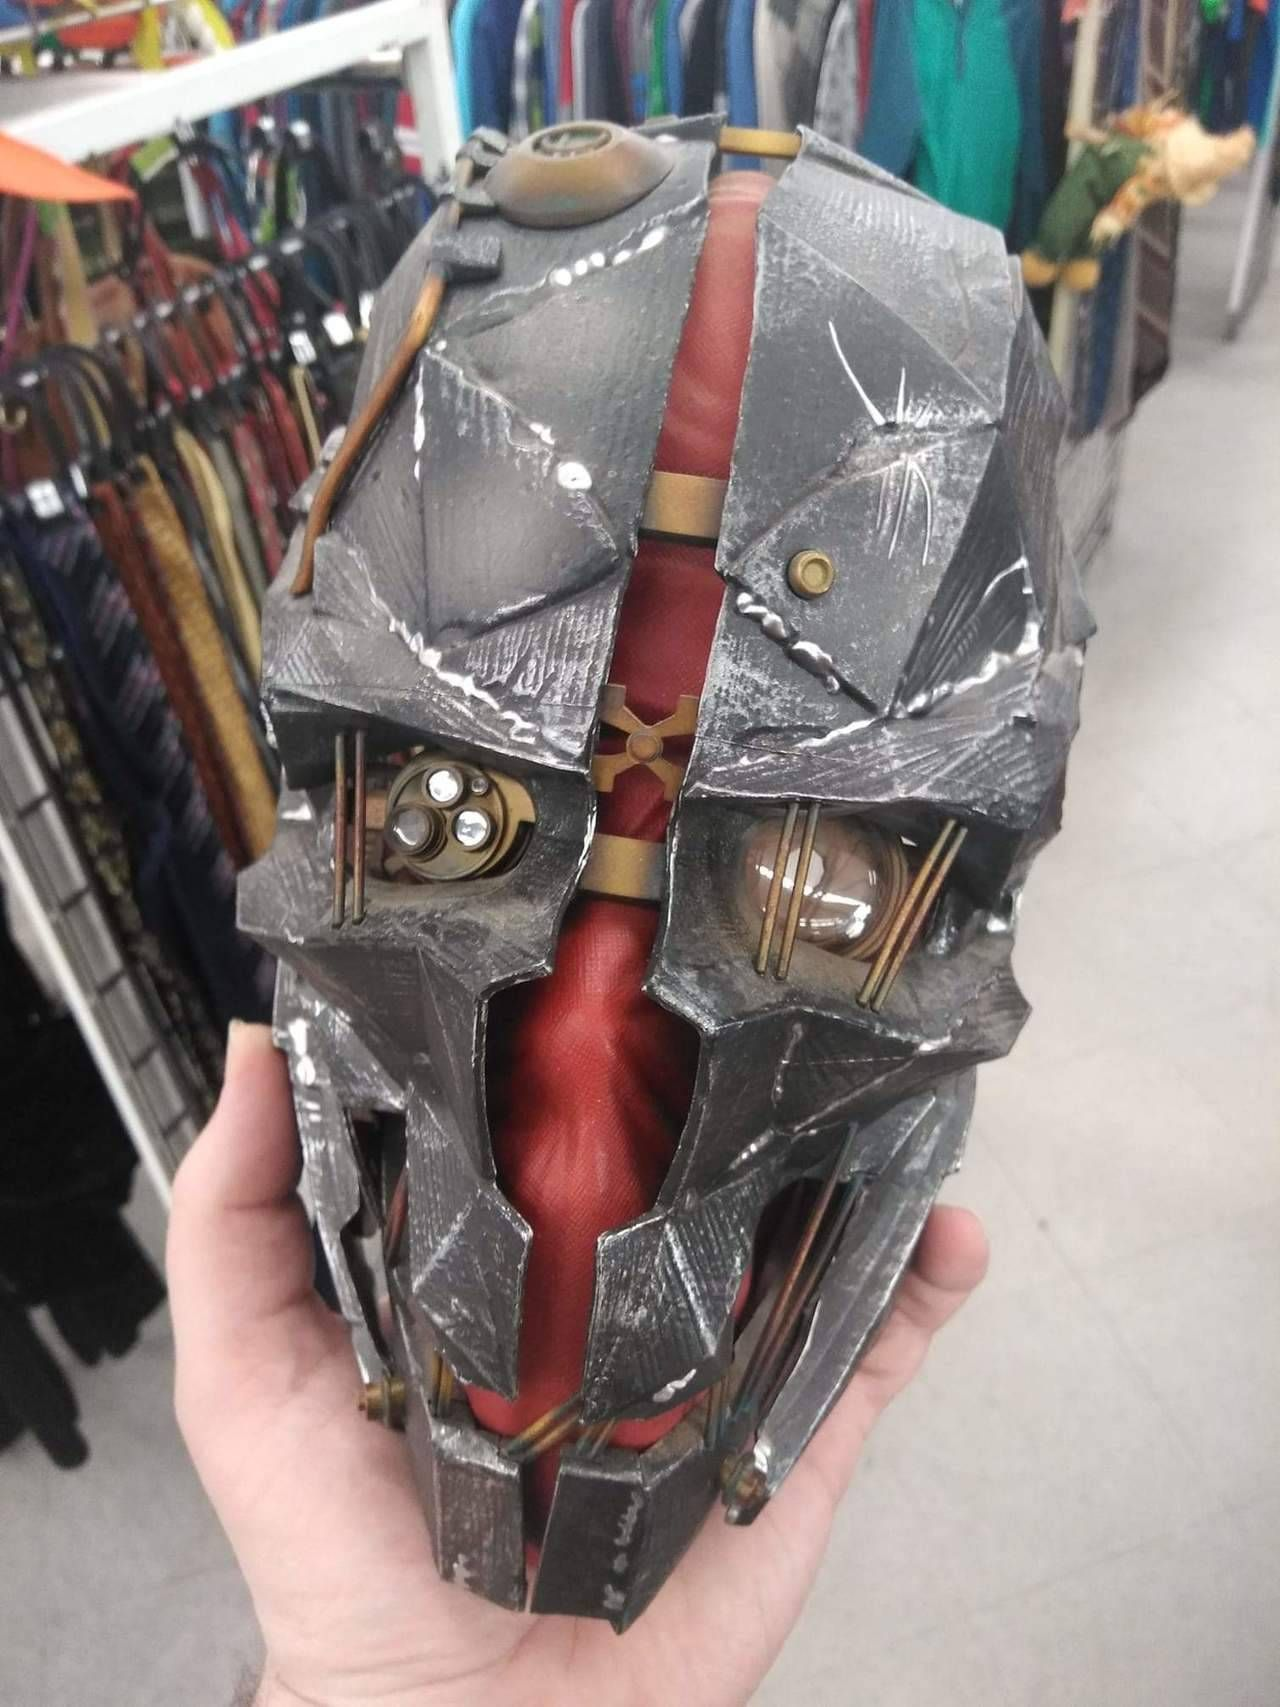 My friend found this mask at a thrift store for 3 he